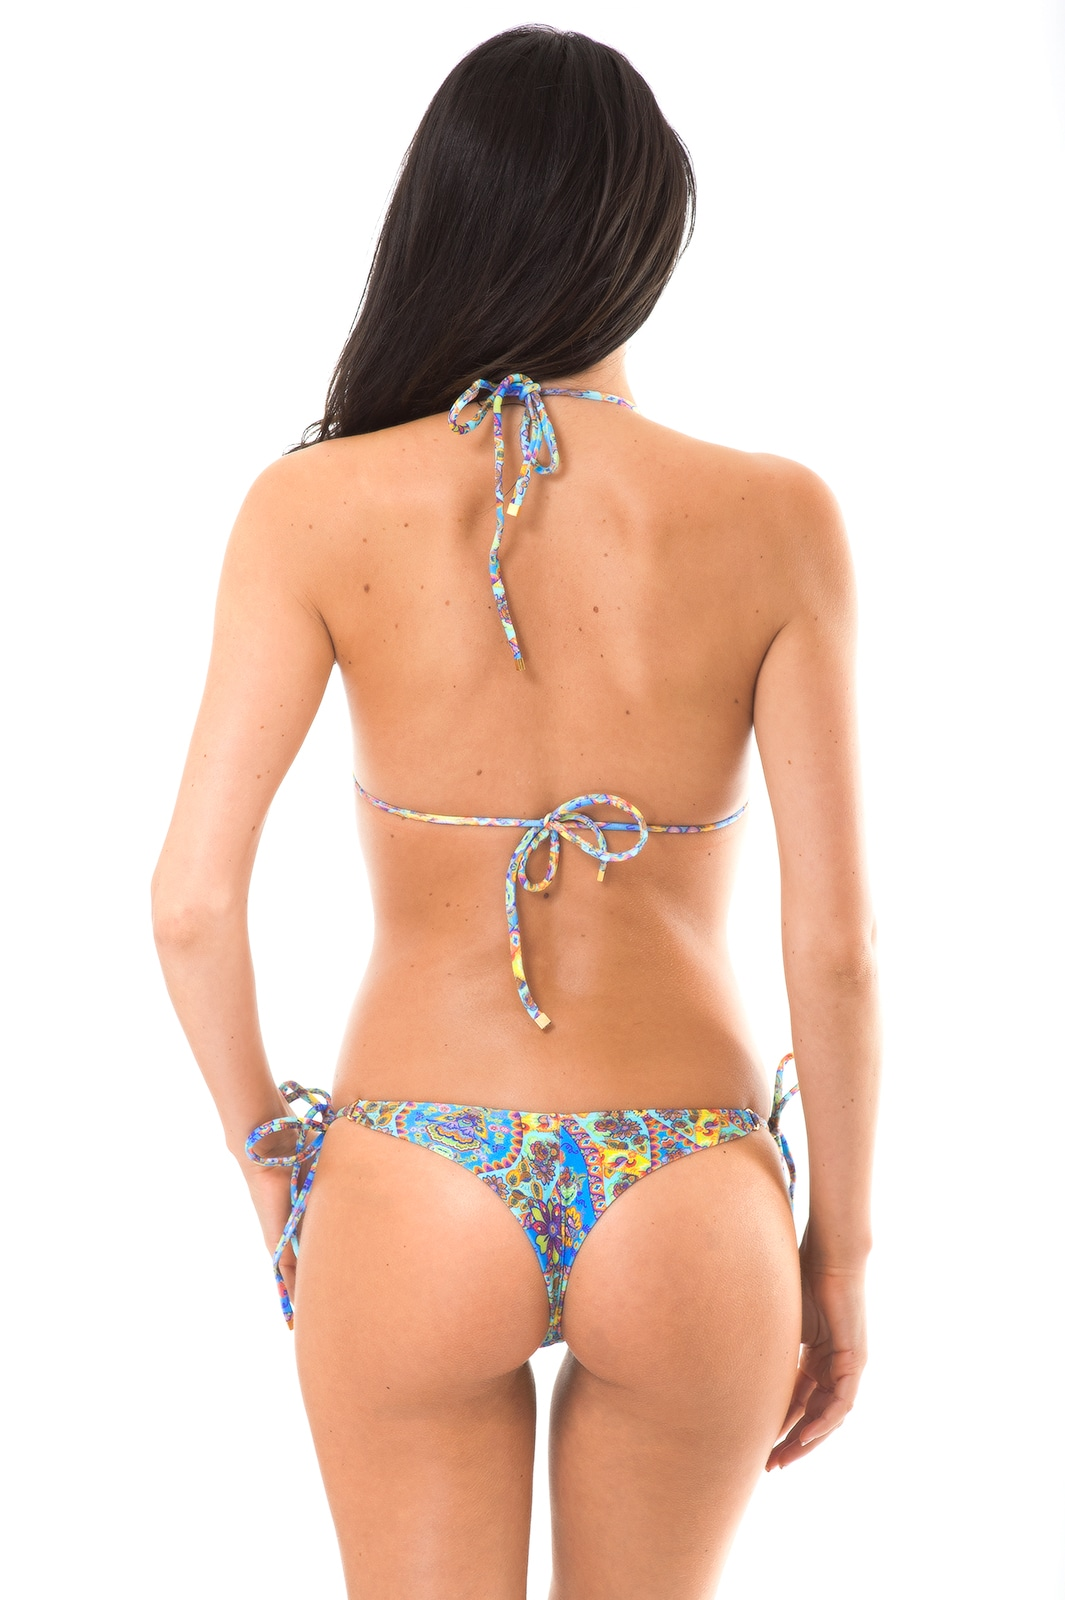 rio de sol thong bikini with vintage floral print sari. Black Bedroom Furniture Sets. Home Design Ideas